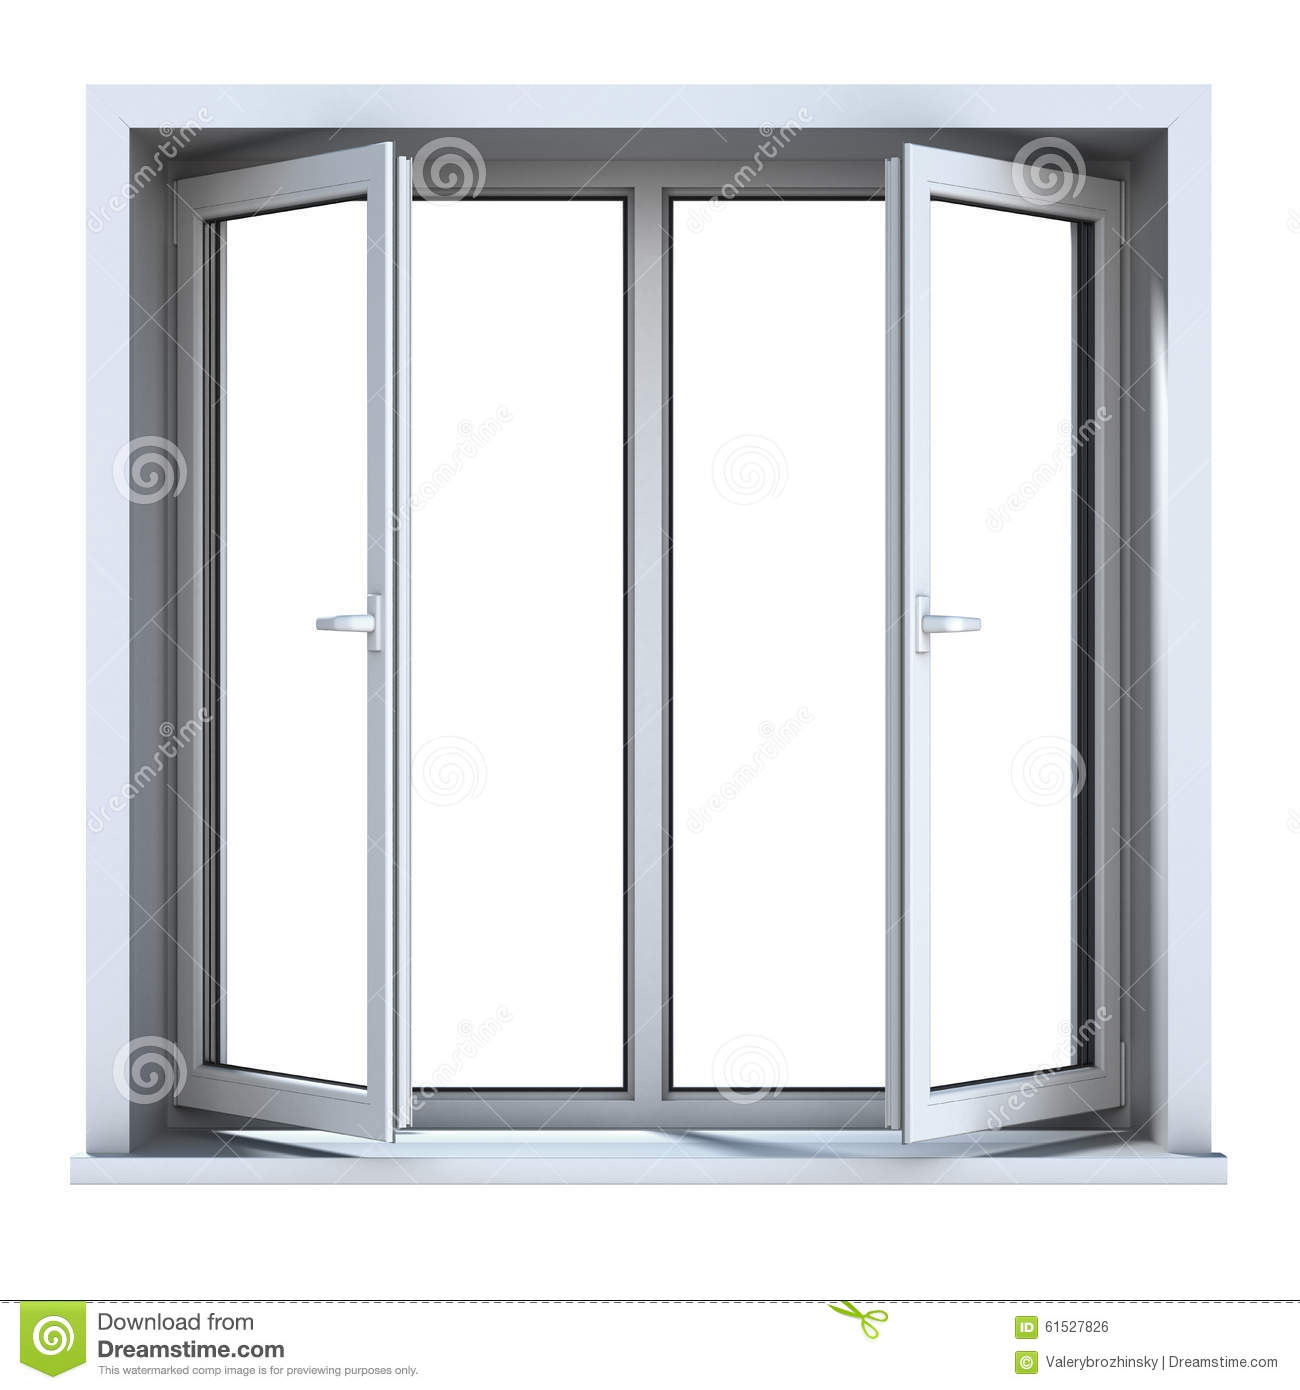 Open plastic window stock illustration image 61527826 for Window plastic